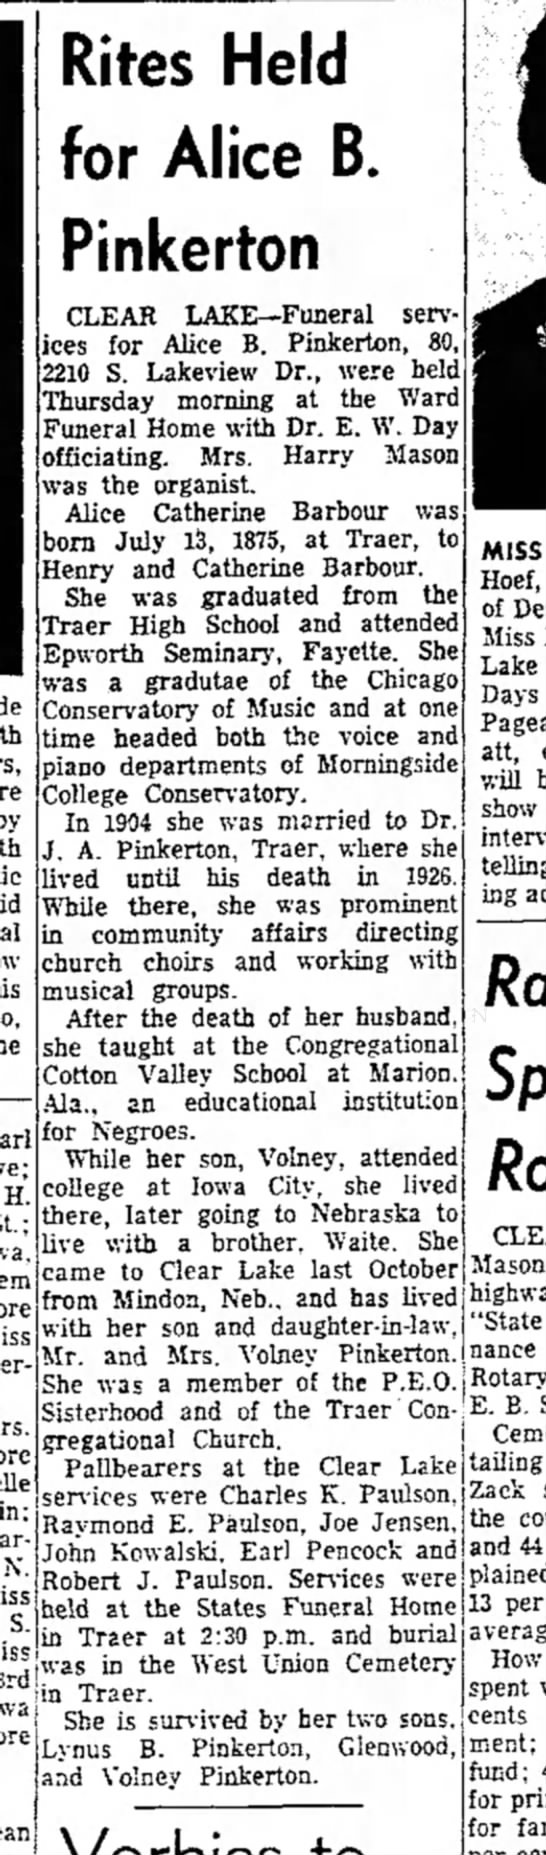 The Mason City Globe-Gazette (Mason City, Iowa) 29 Jul 1955